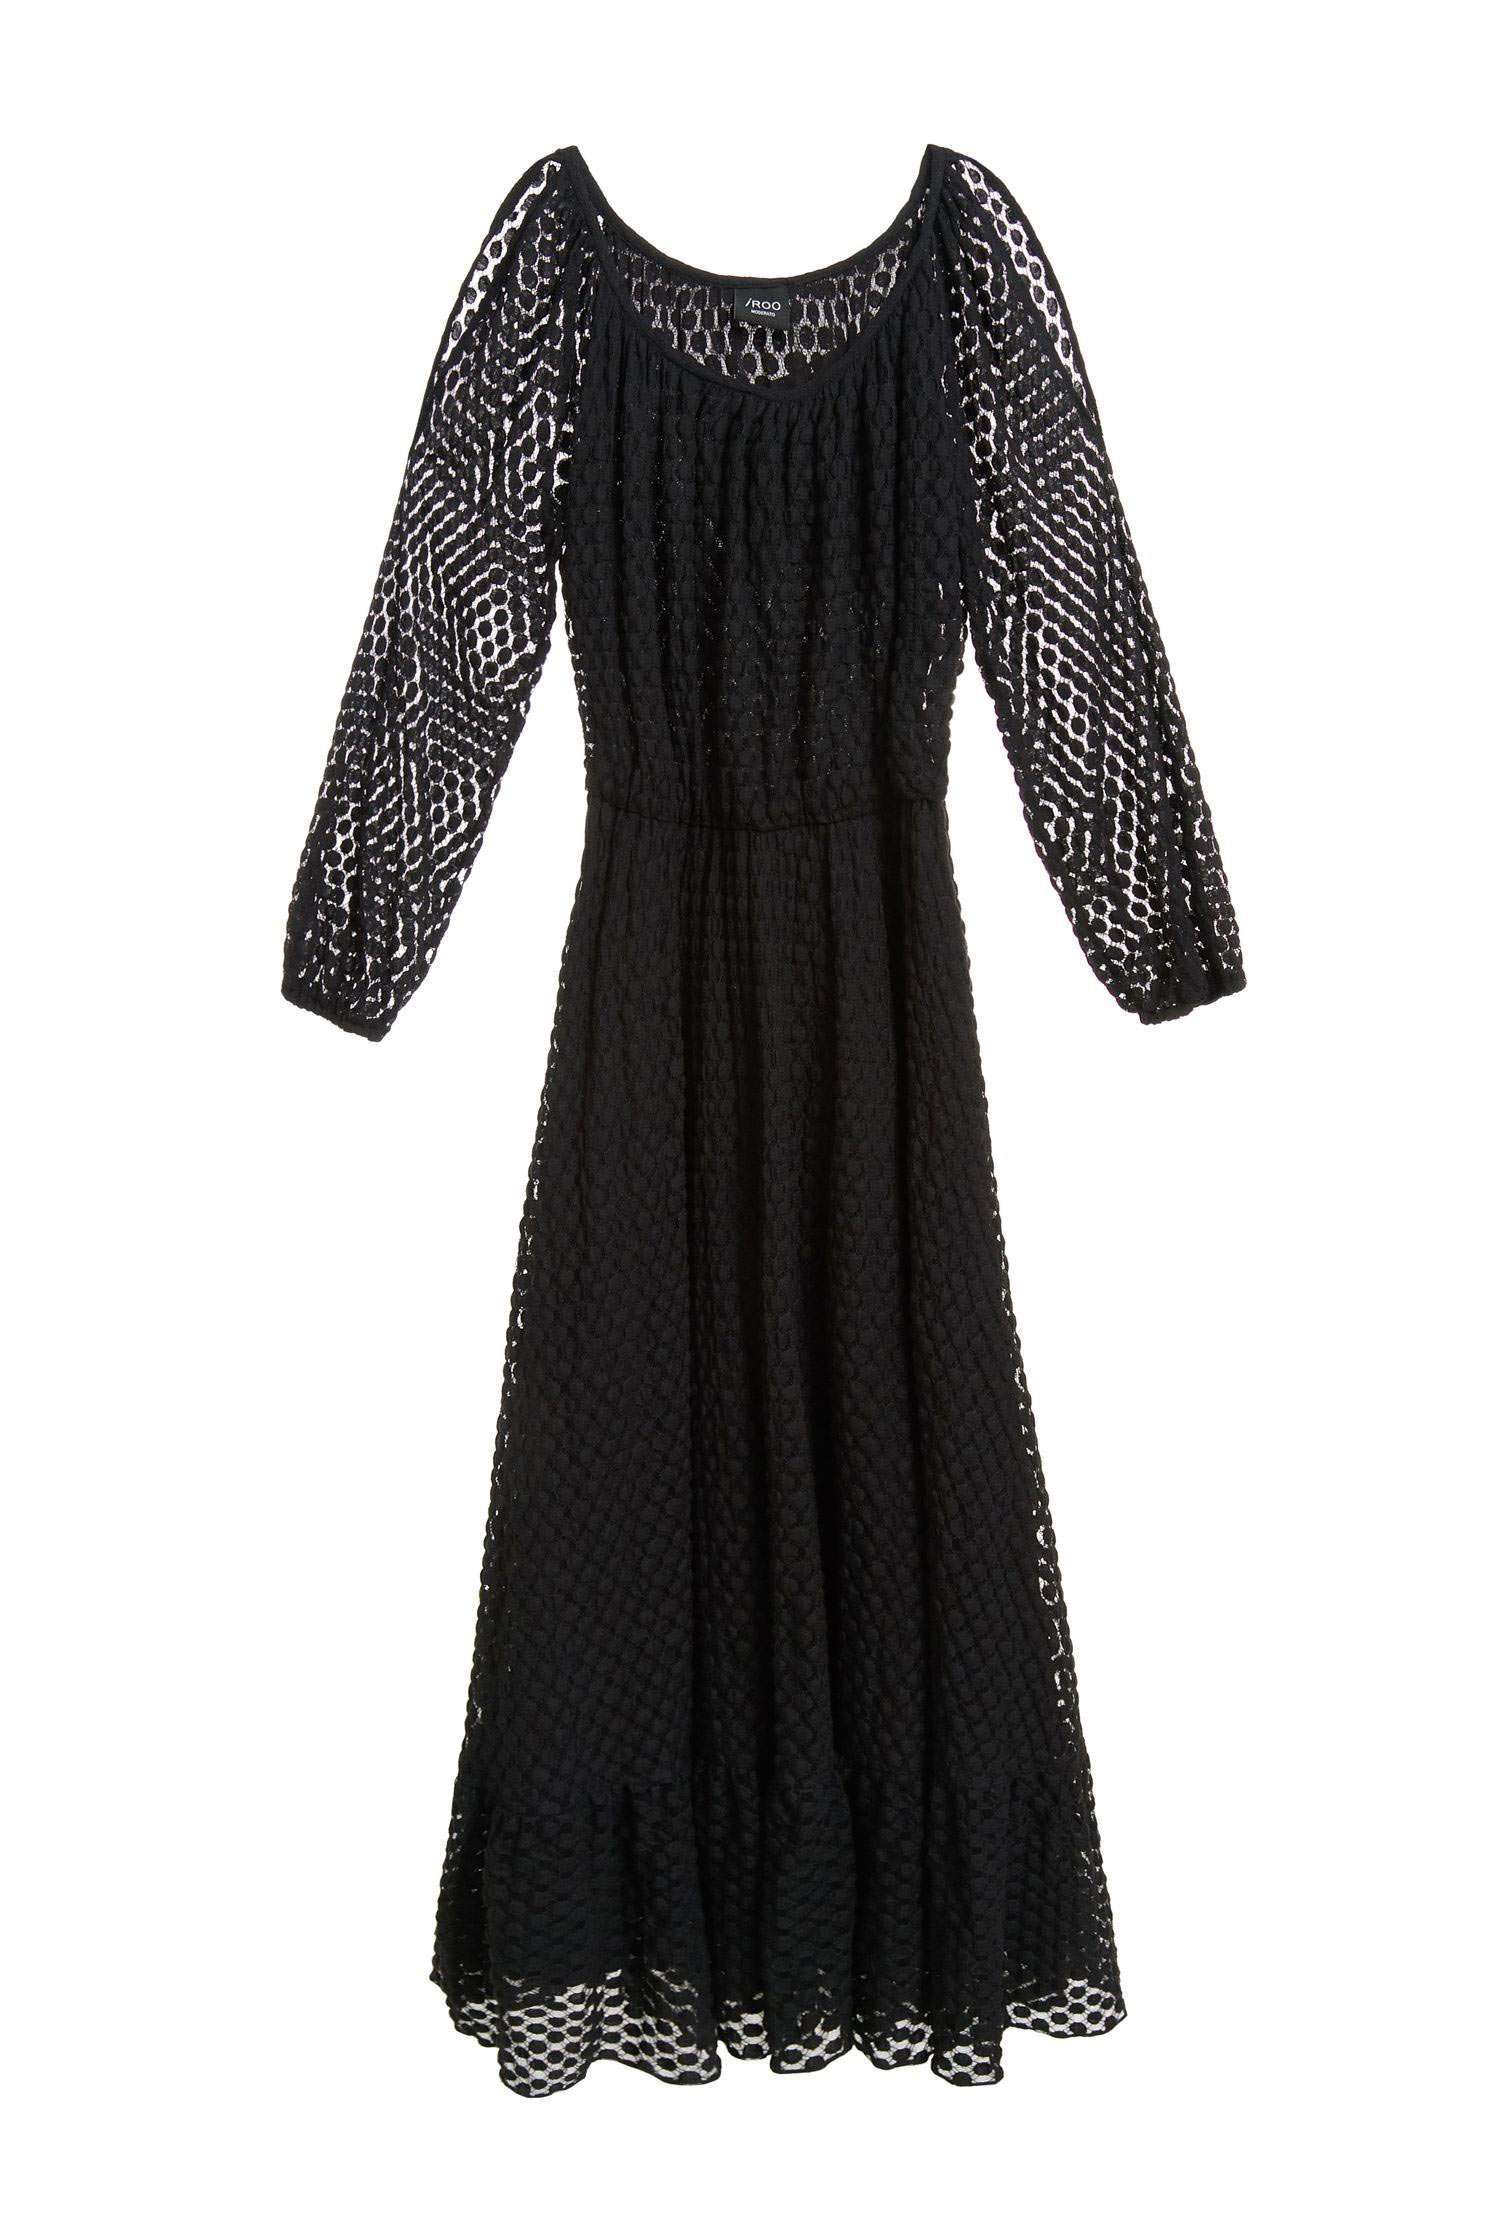 dot dress WITH CUT-OUT SHOULDERS